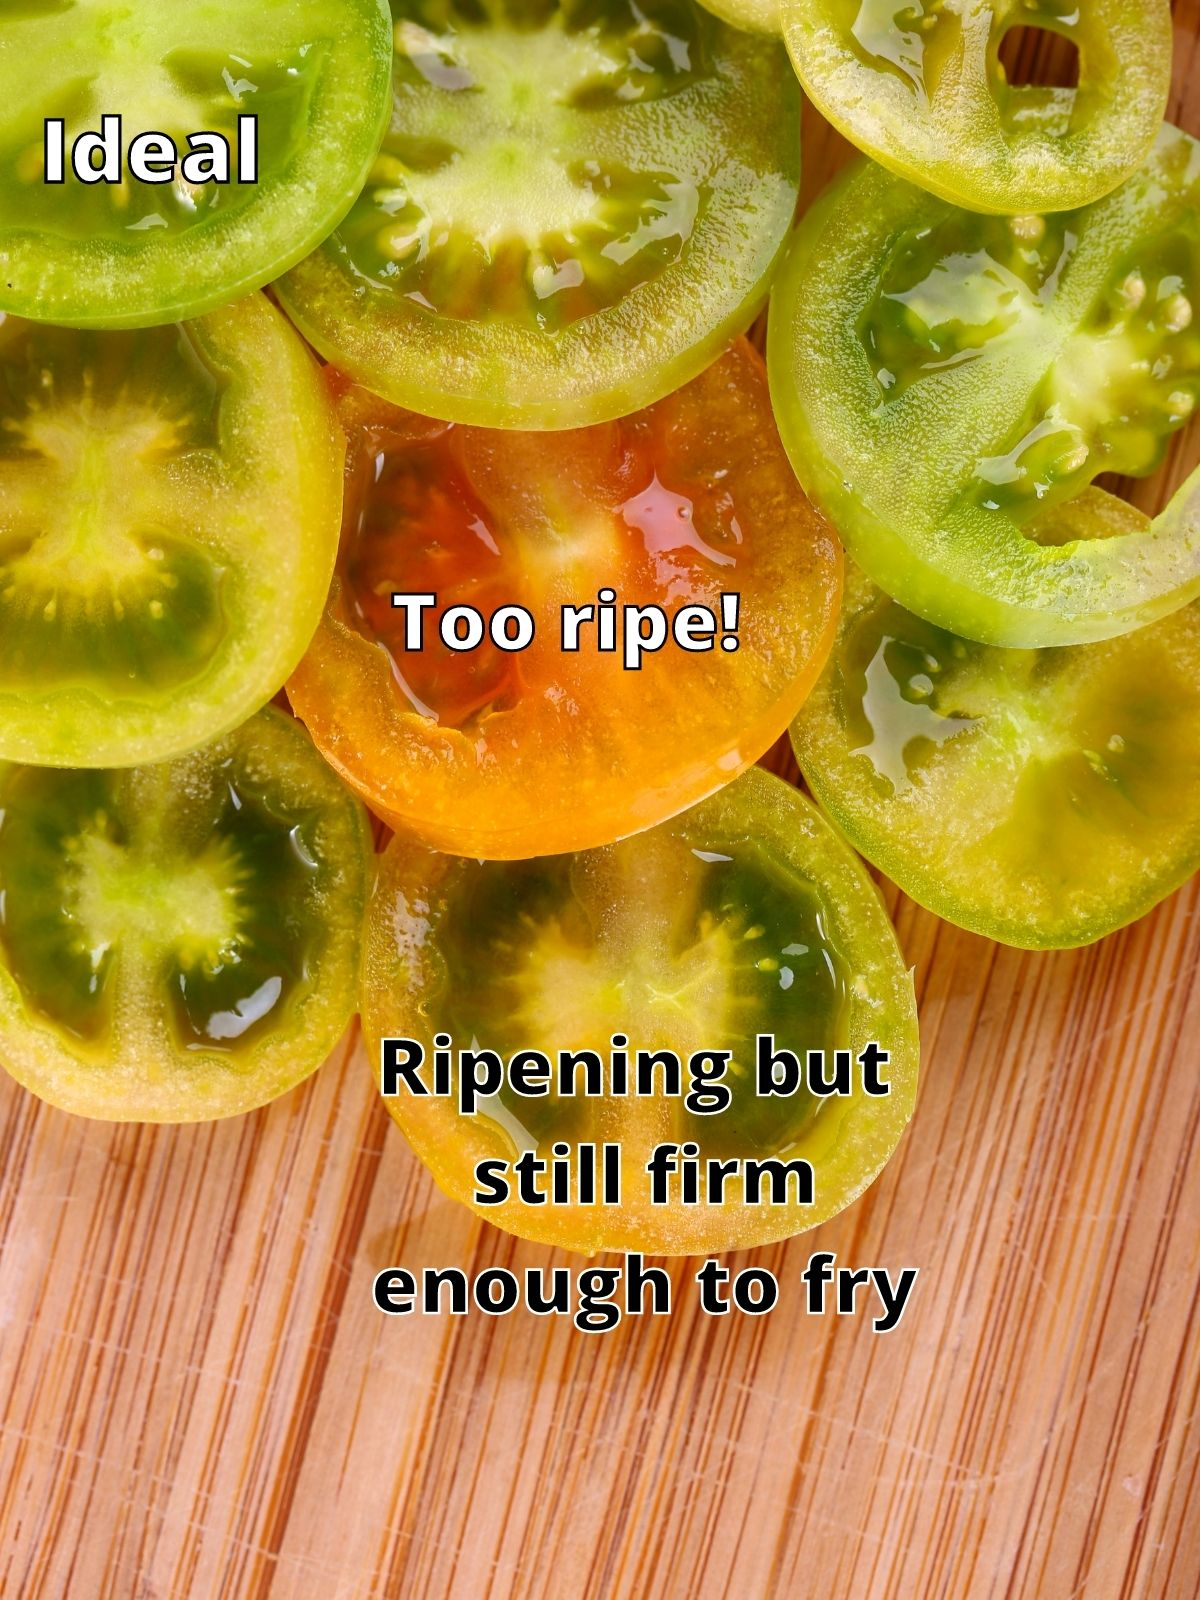 tomato ripeness guide. Green tomato slices are shown along side an orange tomato slice as well as slices that are in between colors.